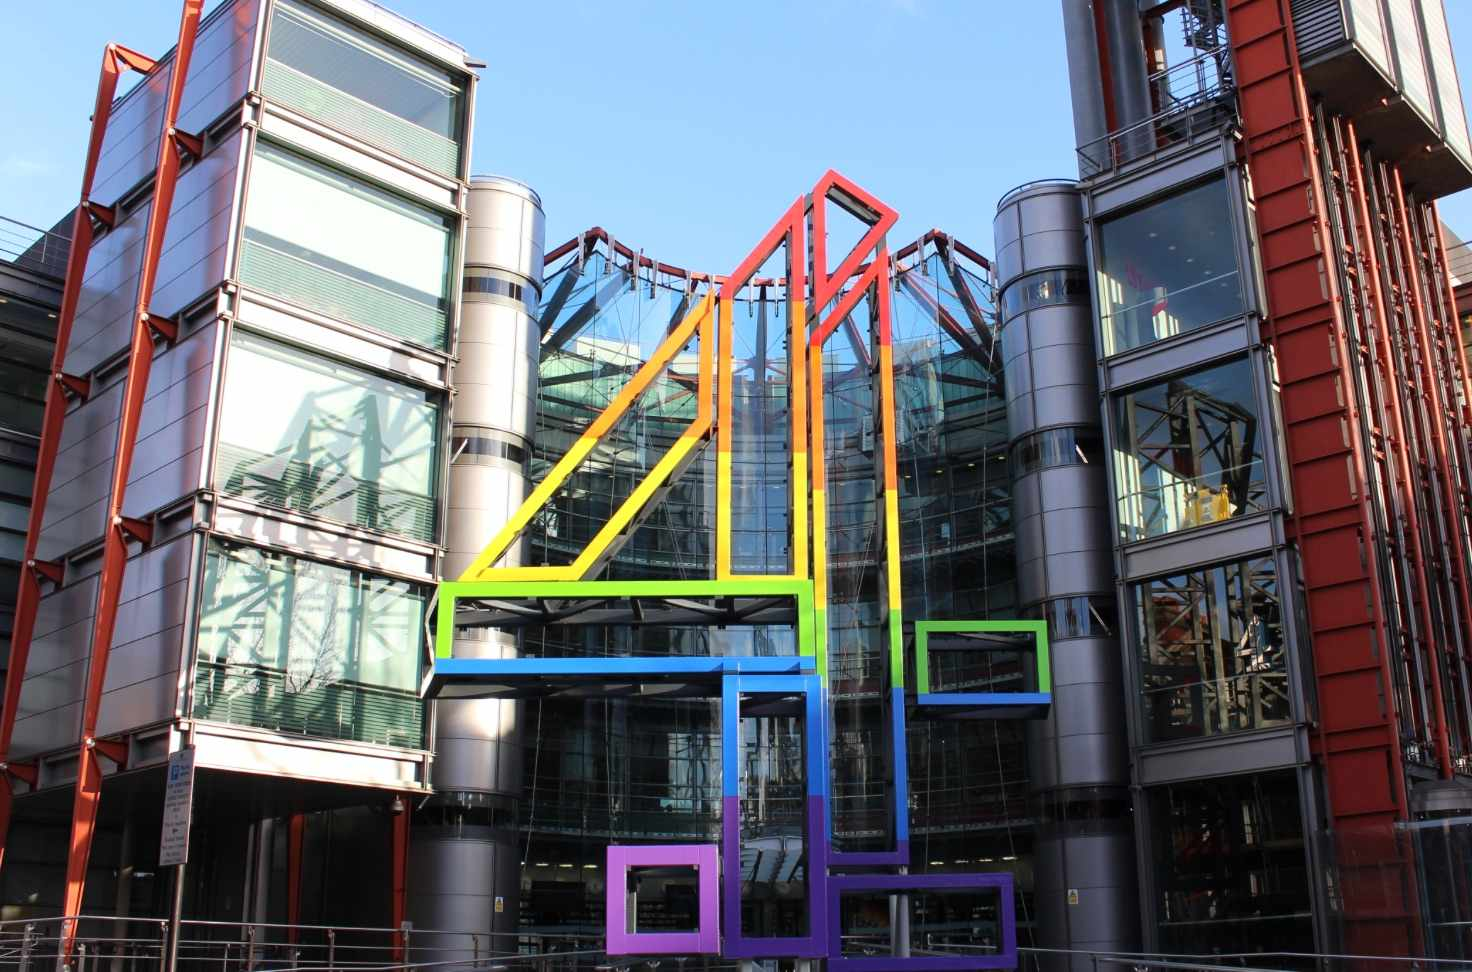 Channel 4 Horseferry Road